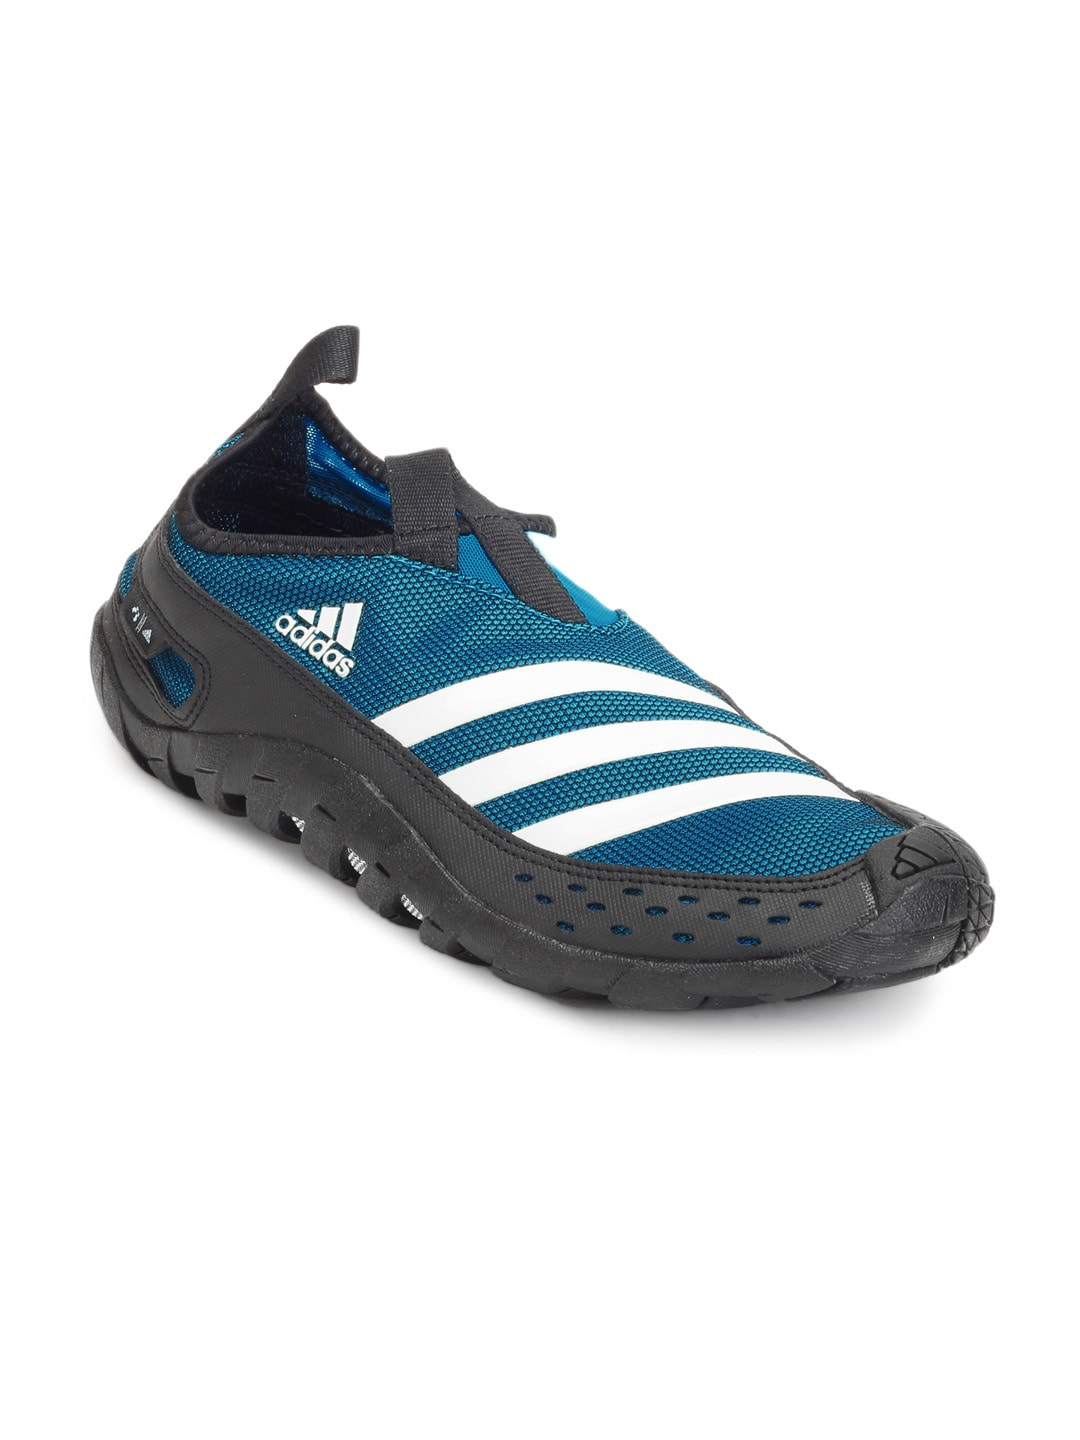 Adidas Shoes Casual For Men